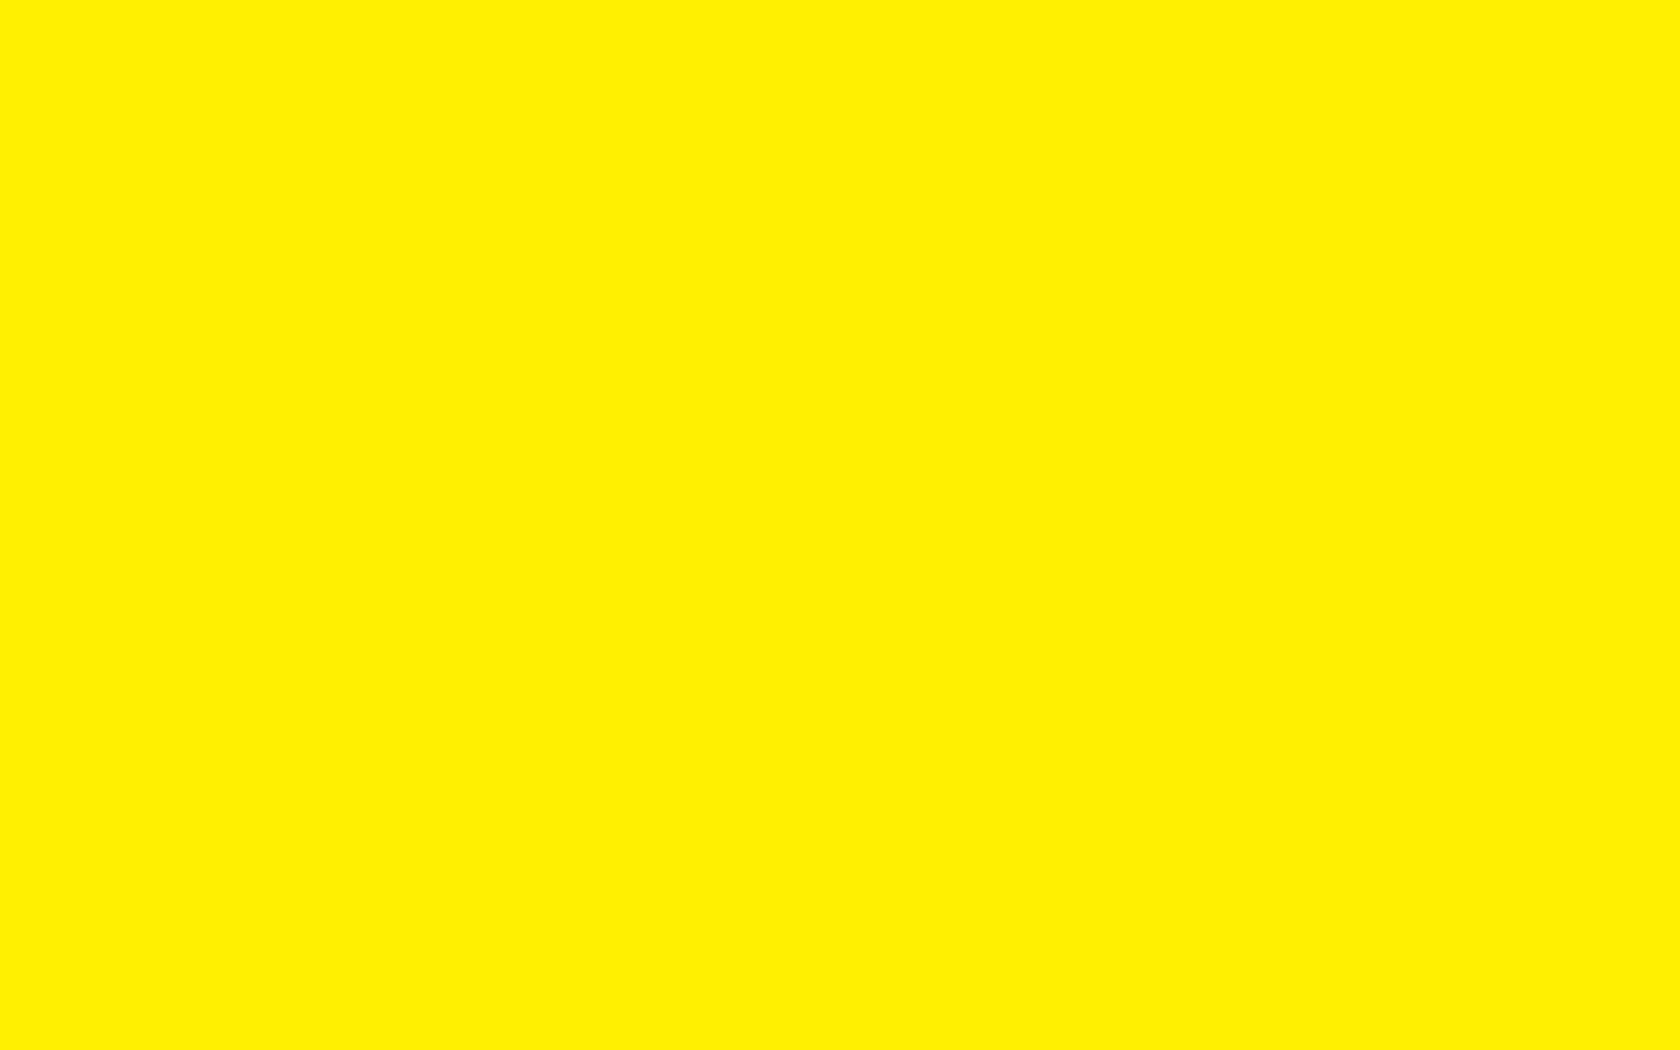 1680x1050 Canary Yellow Solid Color Background